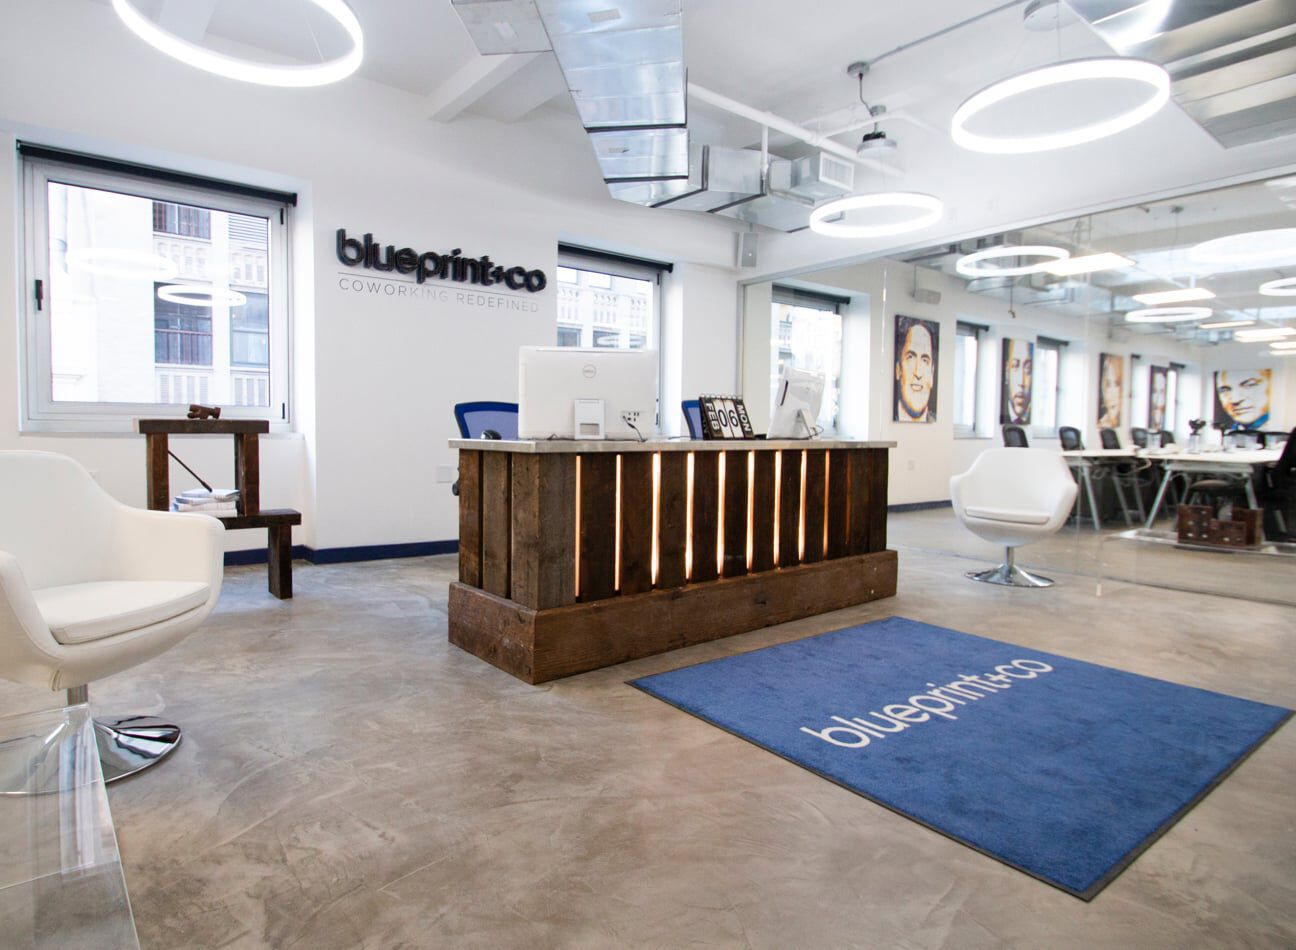 blueprint and co office  image